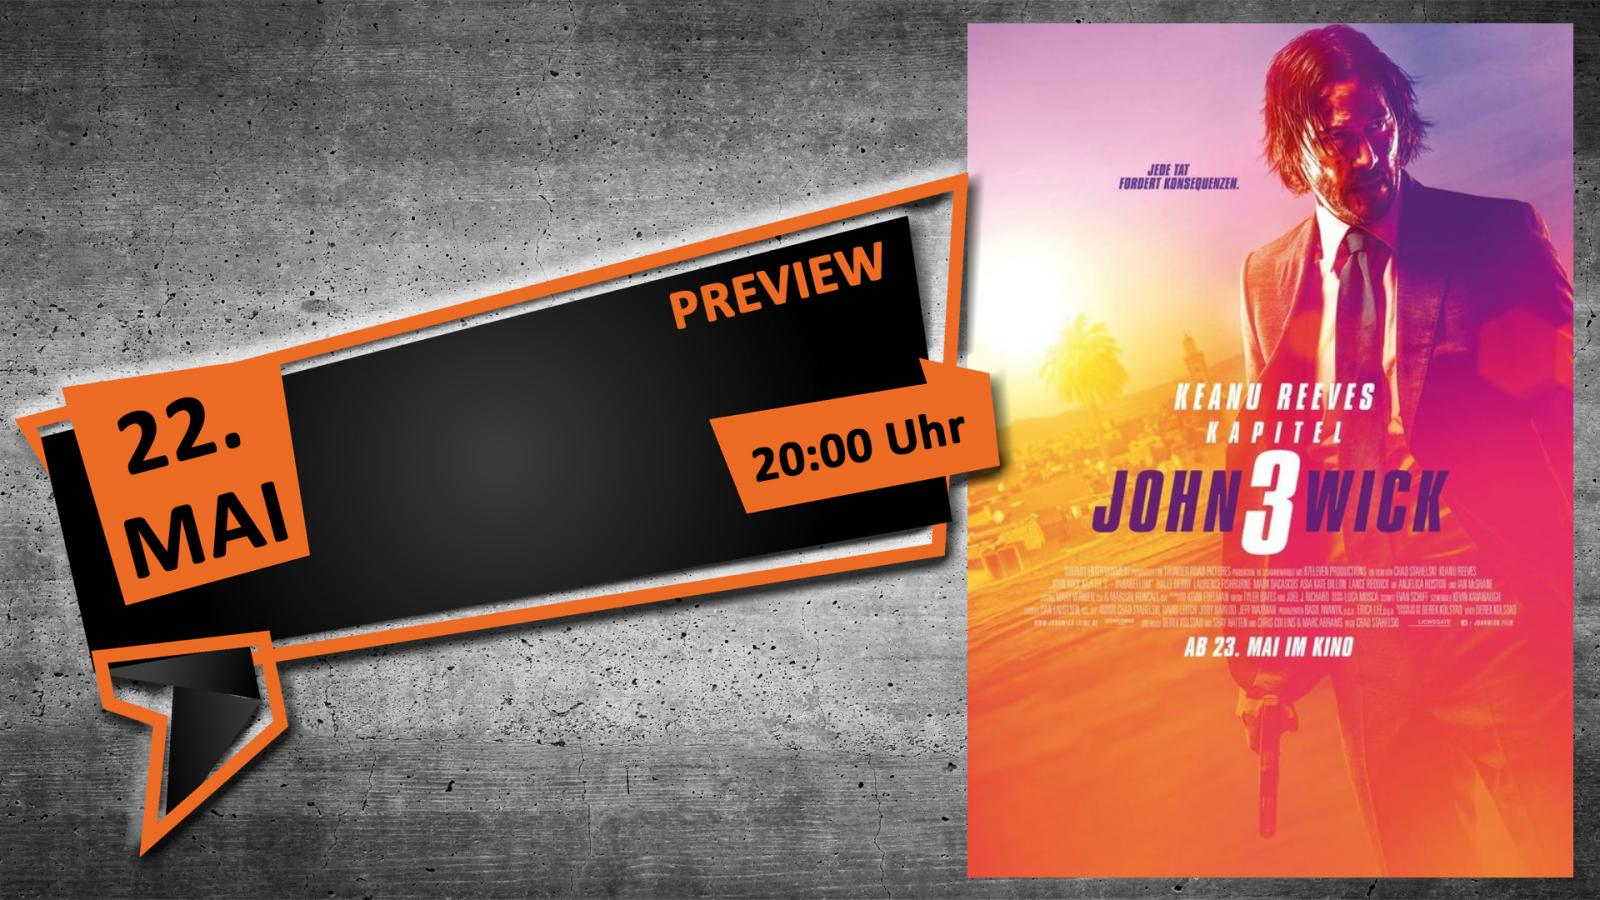 Preview: 22.05.2019 - 20:00 Uhr